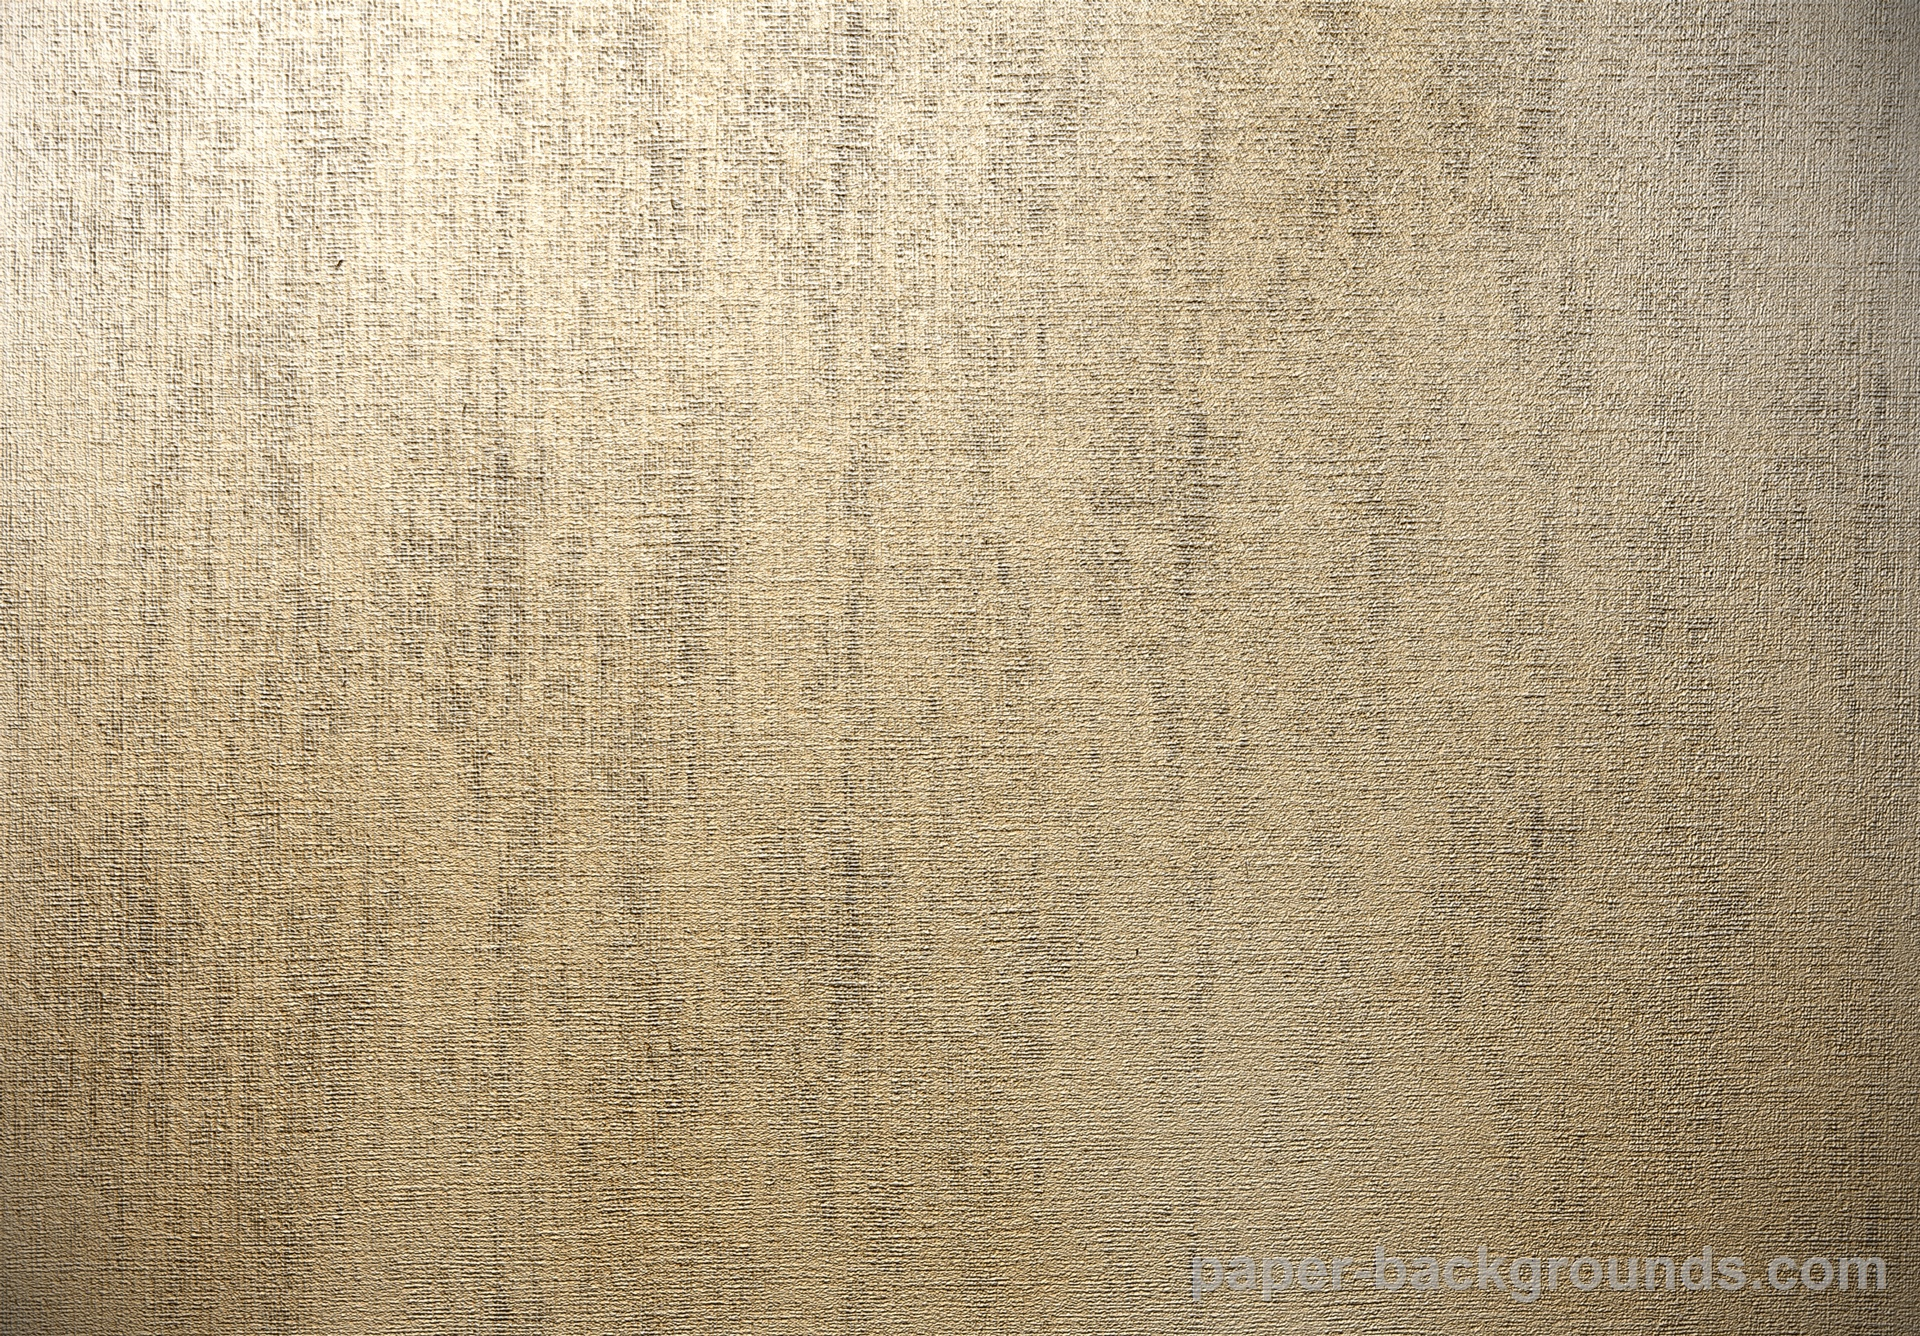 Related Pictures brown grunge texture background paper backgrounds hd ...: background-pictures.vidzshare.net/brown-grunge-texture-background...